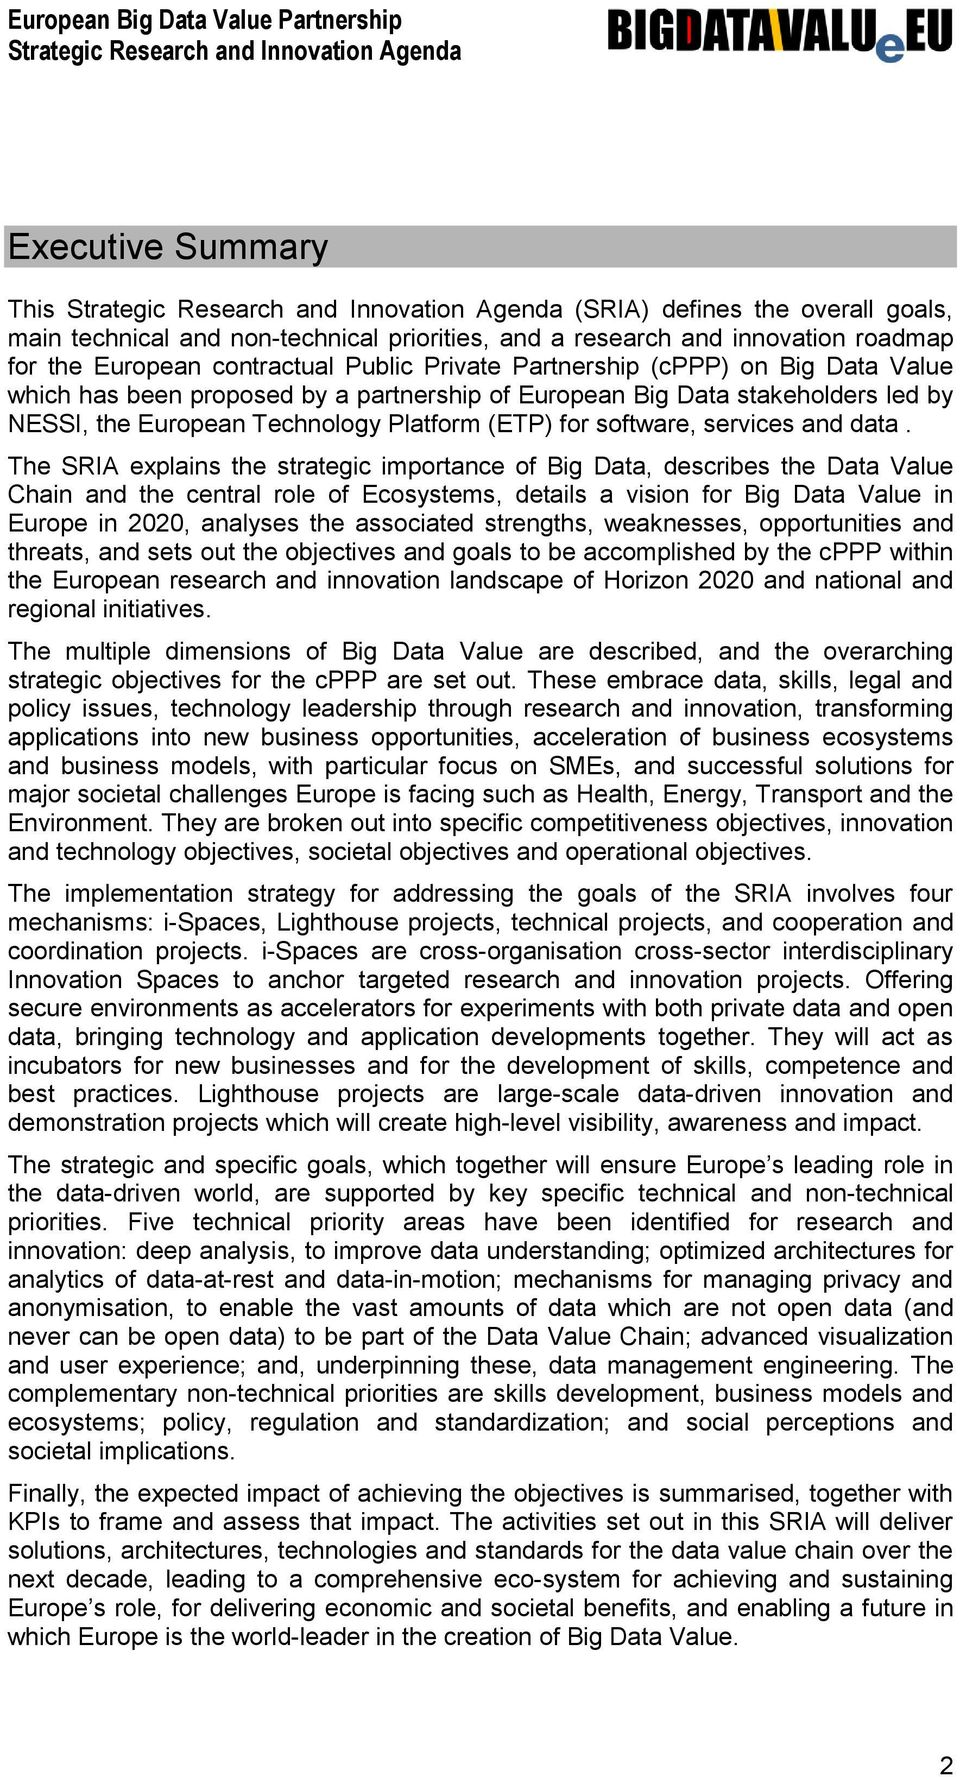 The SRIA explains the strategic importance of Big Data, describes the Data Value Chain and the central role of Ecosystems, details a vision for Big Data Value in Europe in 2020, analyses the